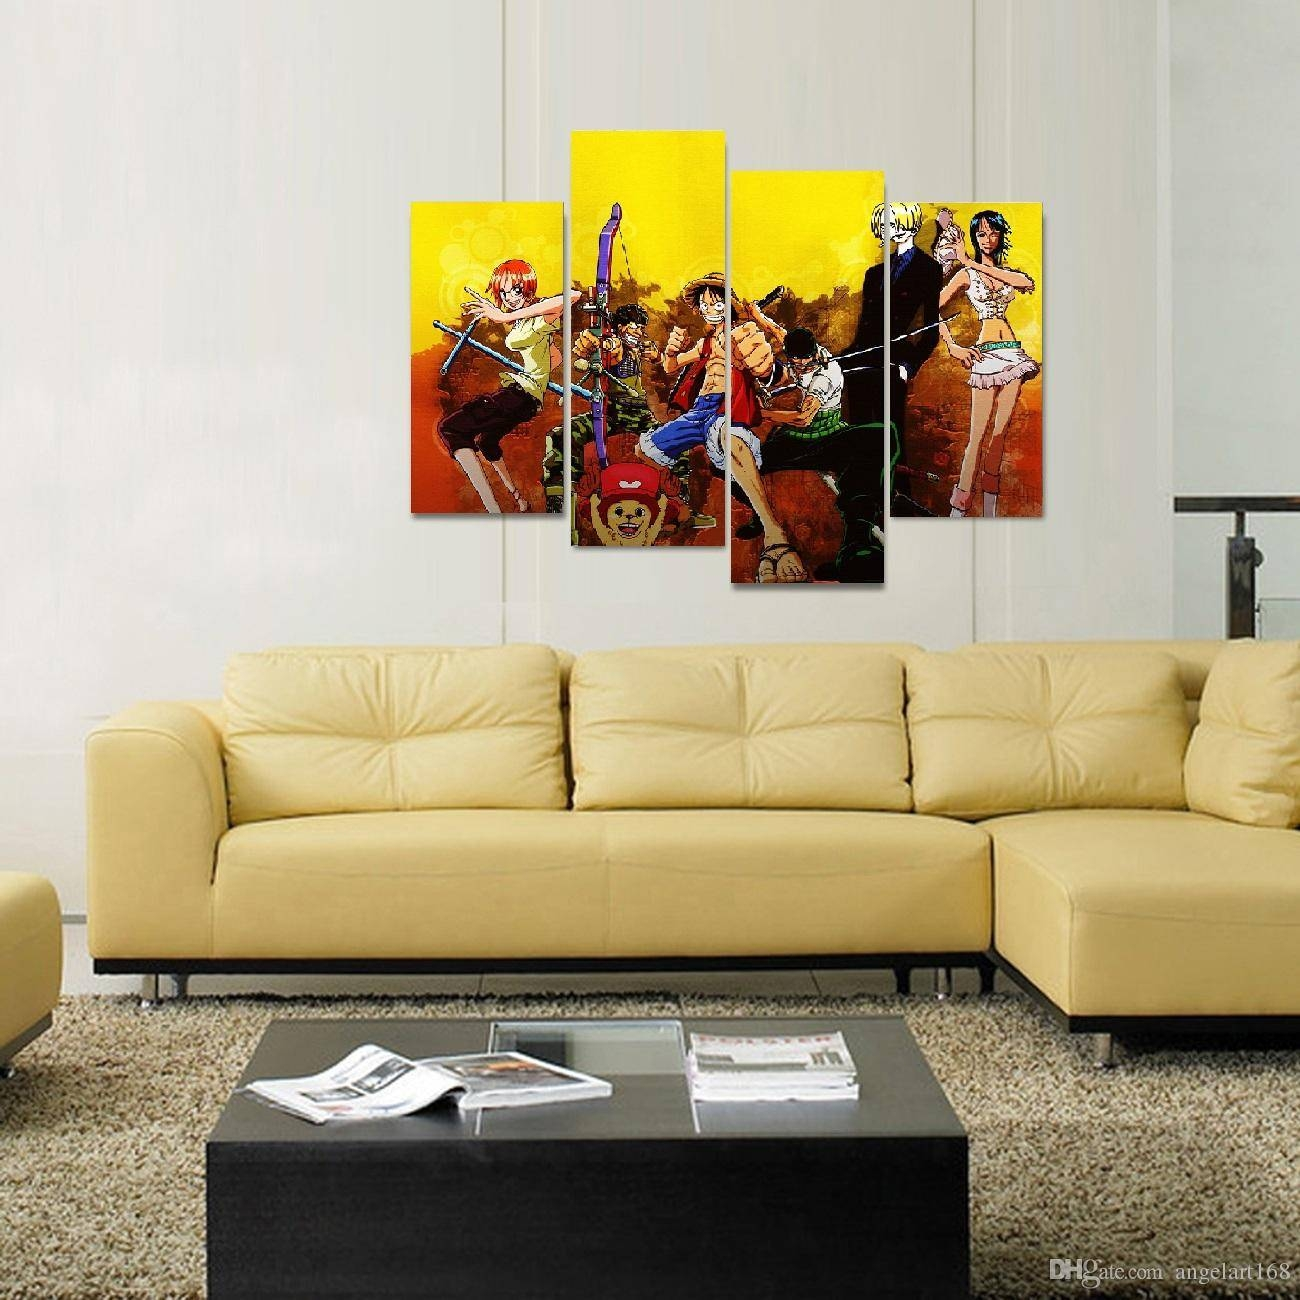 Unframed Luffy's Team 7 Persons Anime Poster Print On Canvas Wall Within 2018 7 Piece Canvas Wall Art (Gallery 11 of 20)